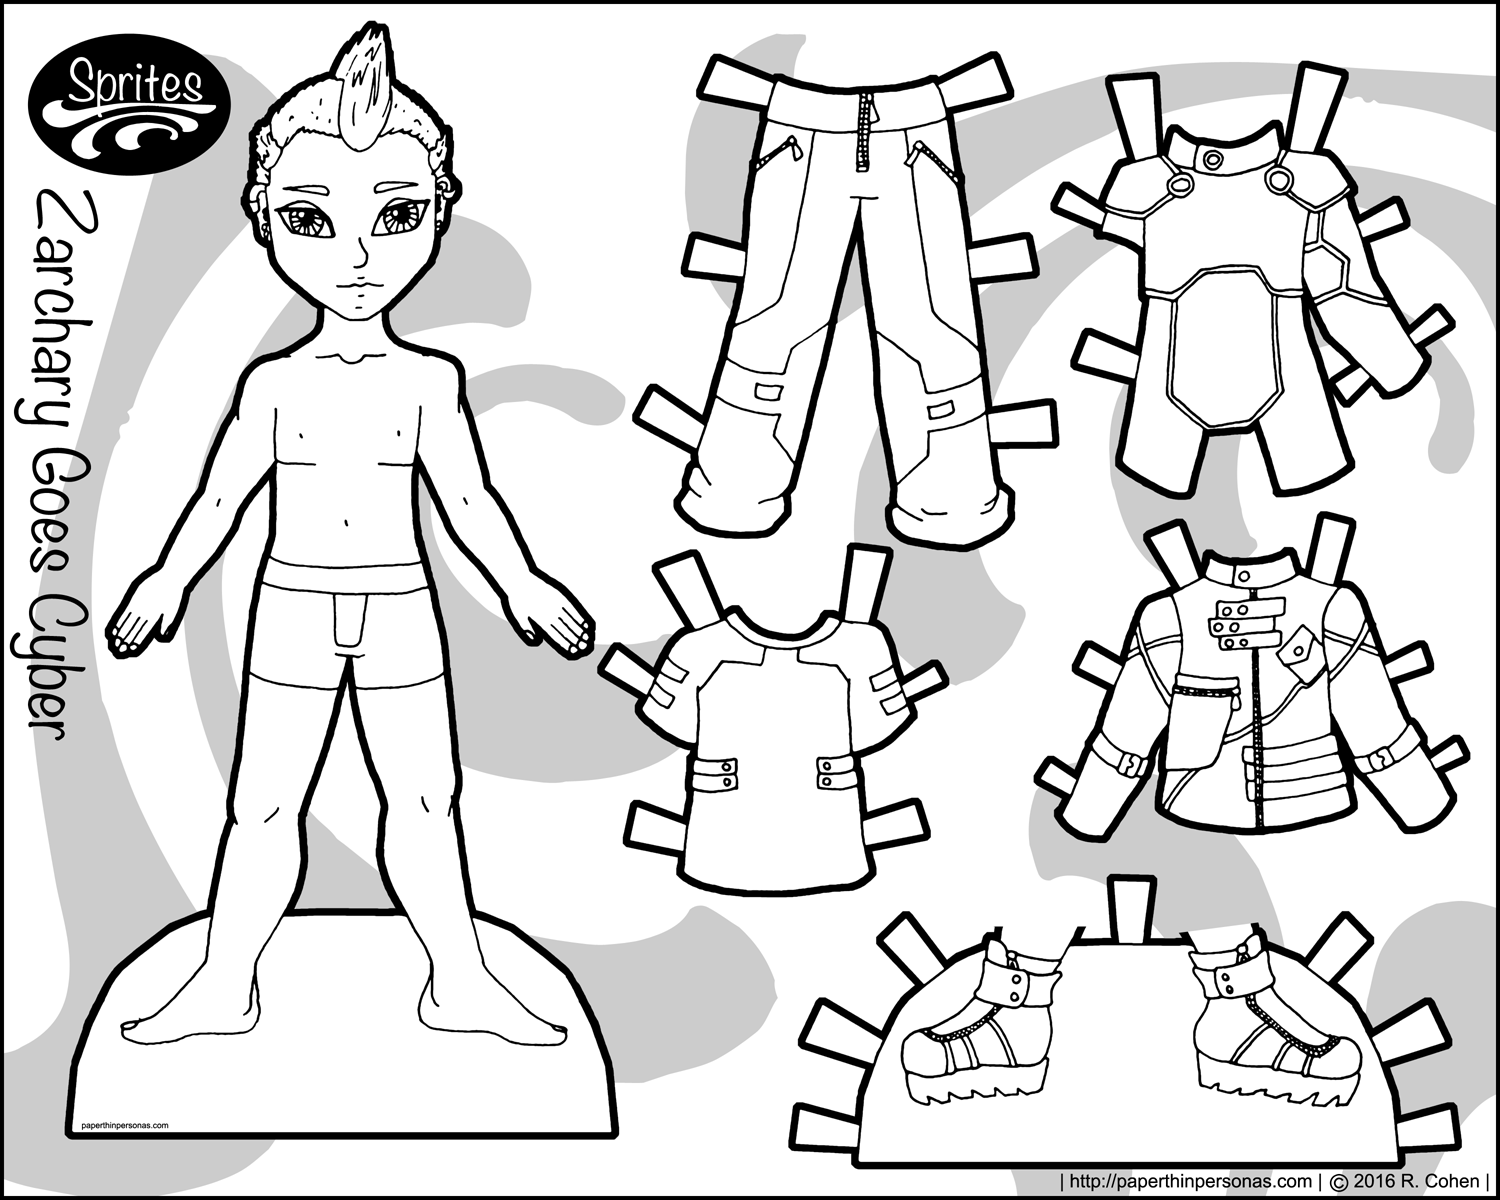 Adaptable image with paper doll printable